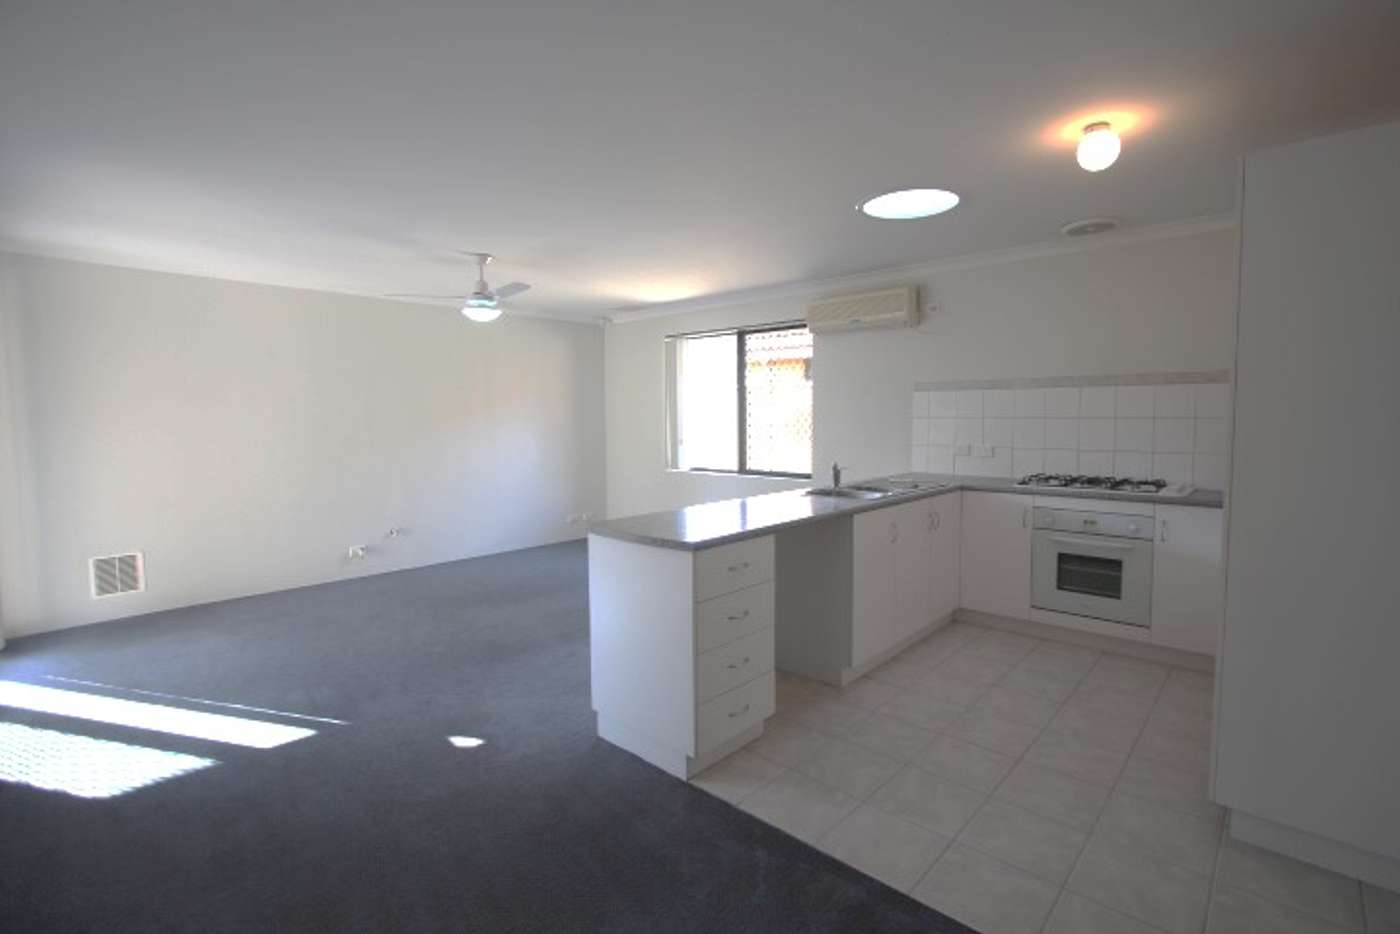 Sixth view of Homely house listing, 9 Stilt Cove, Cannington WA 6107